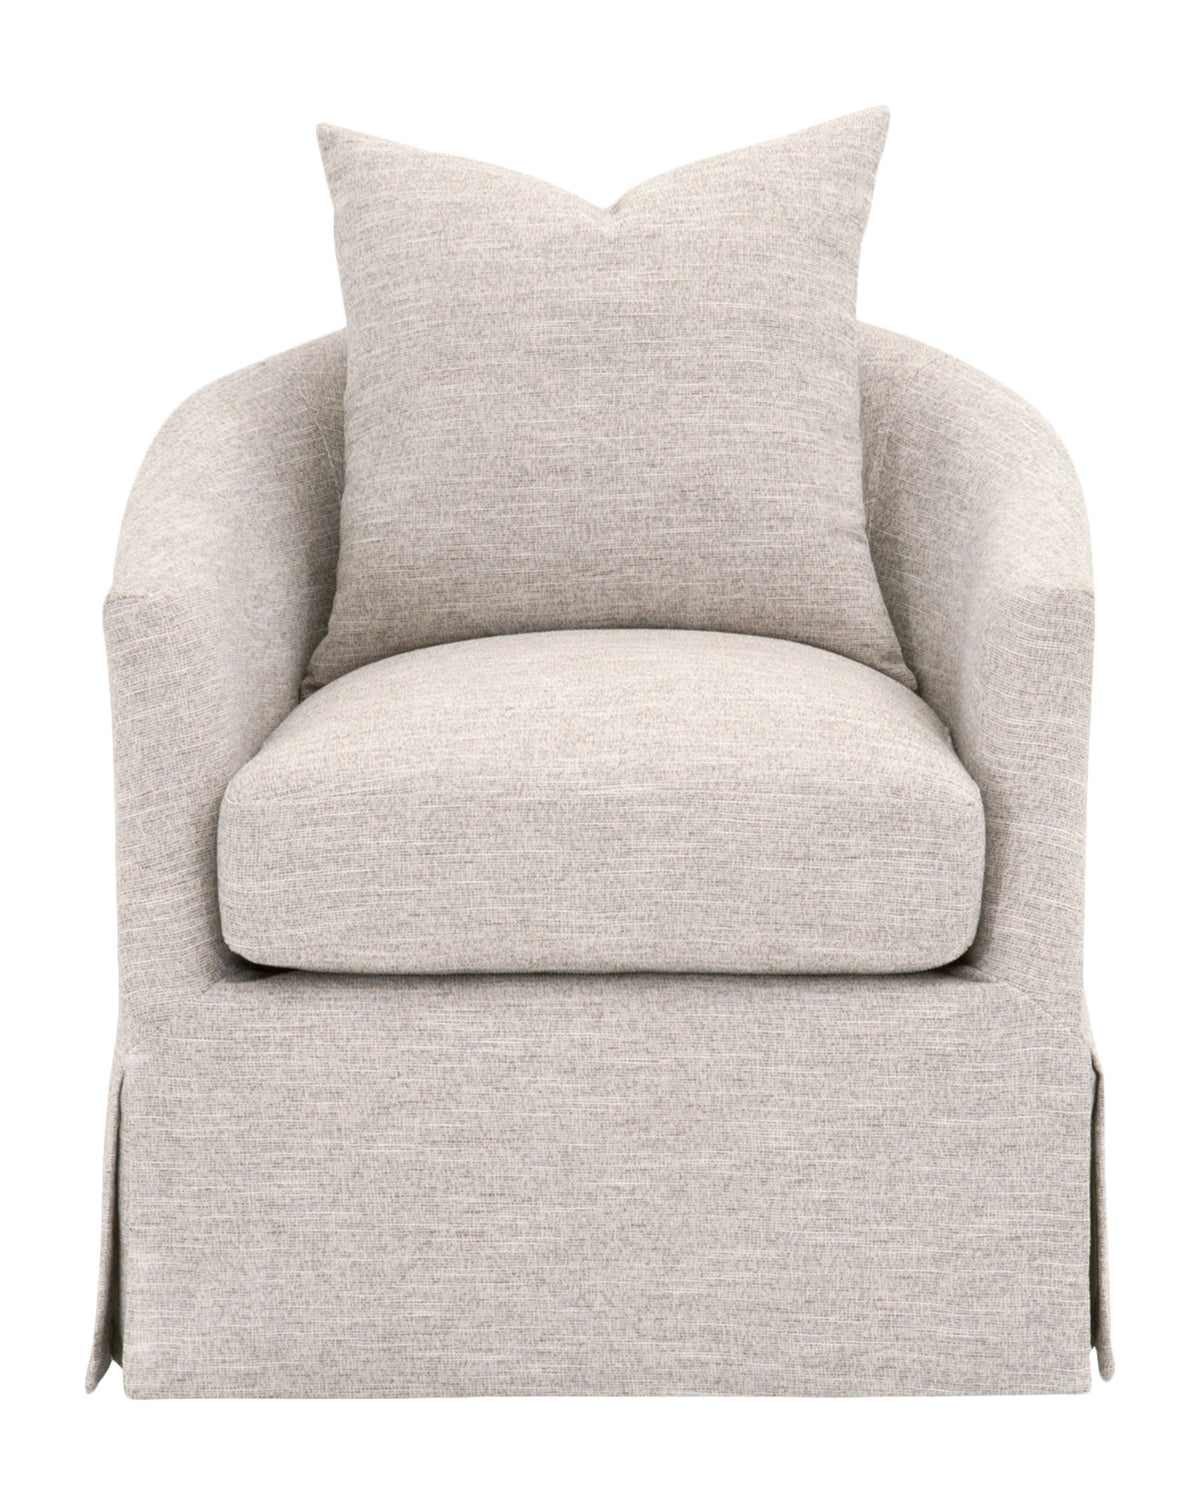 Holden Swivel Chair